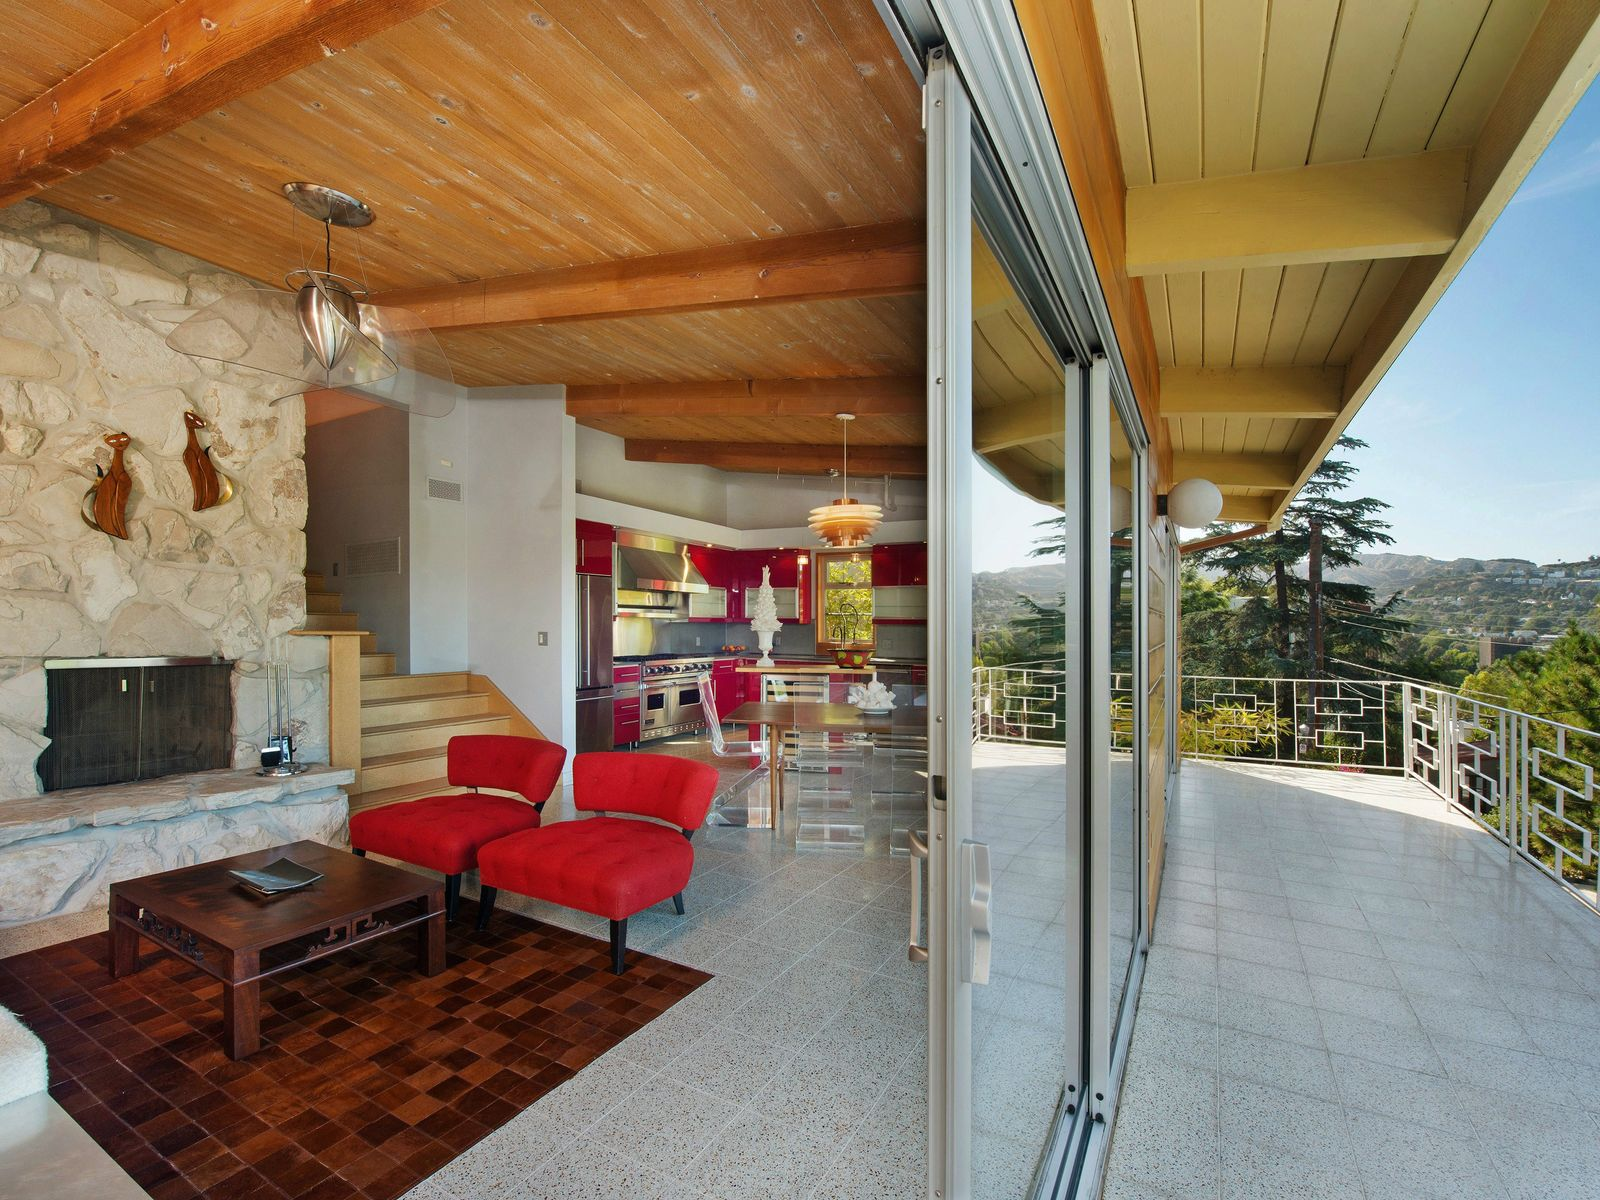 1960's Contemporary Modern, Los Angeles CA Single Family Home - Los Angeles Real Estate